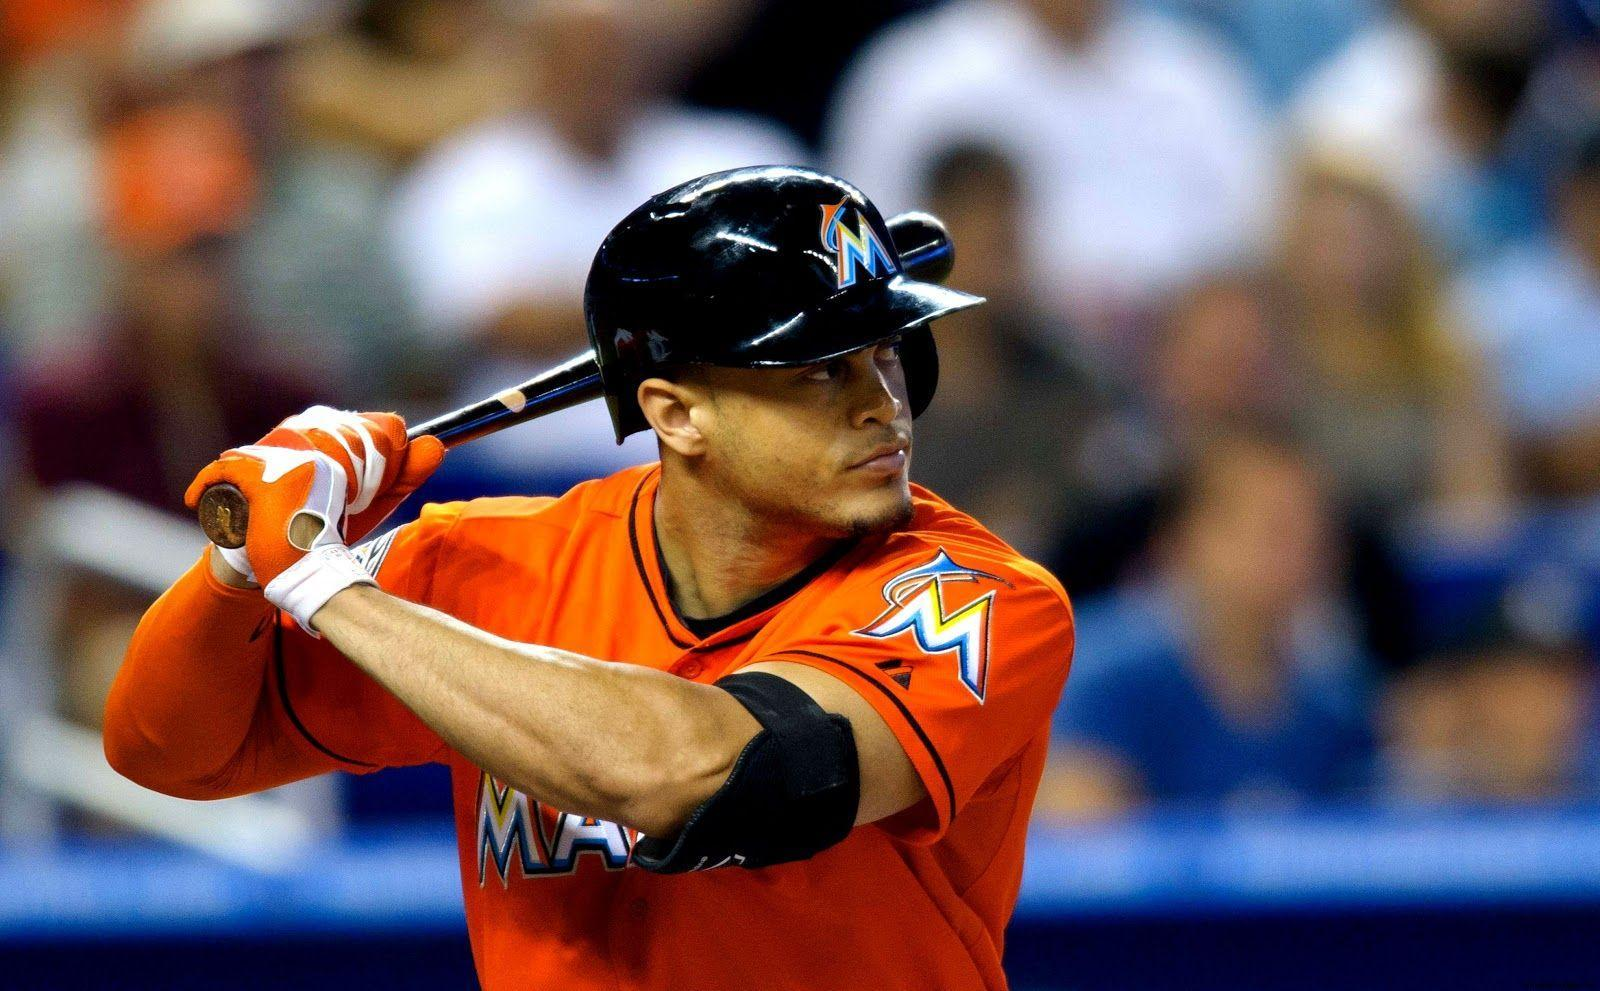 Giancarlo Stanton Wallpaper | Image Wallpapers